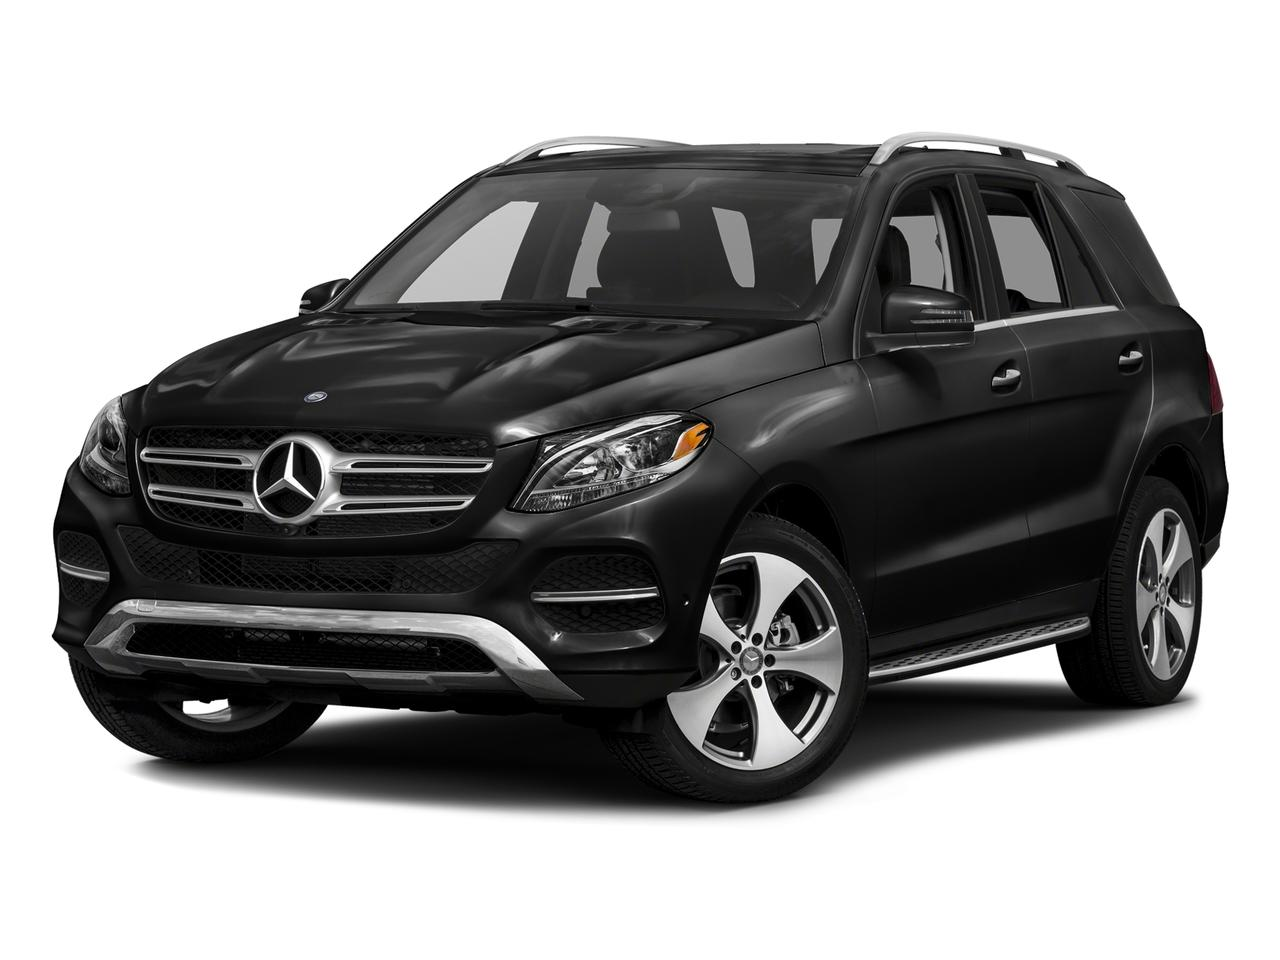 2016 Mercedes-Benz GLE Vehicle Photo in Newark, DE 19711